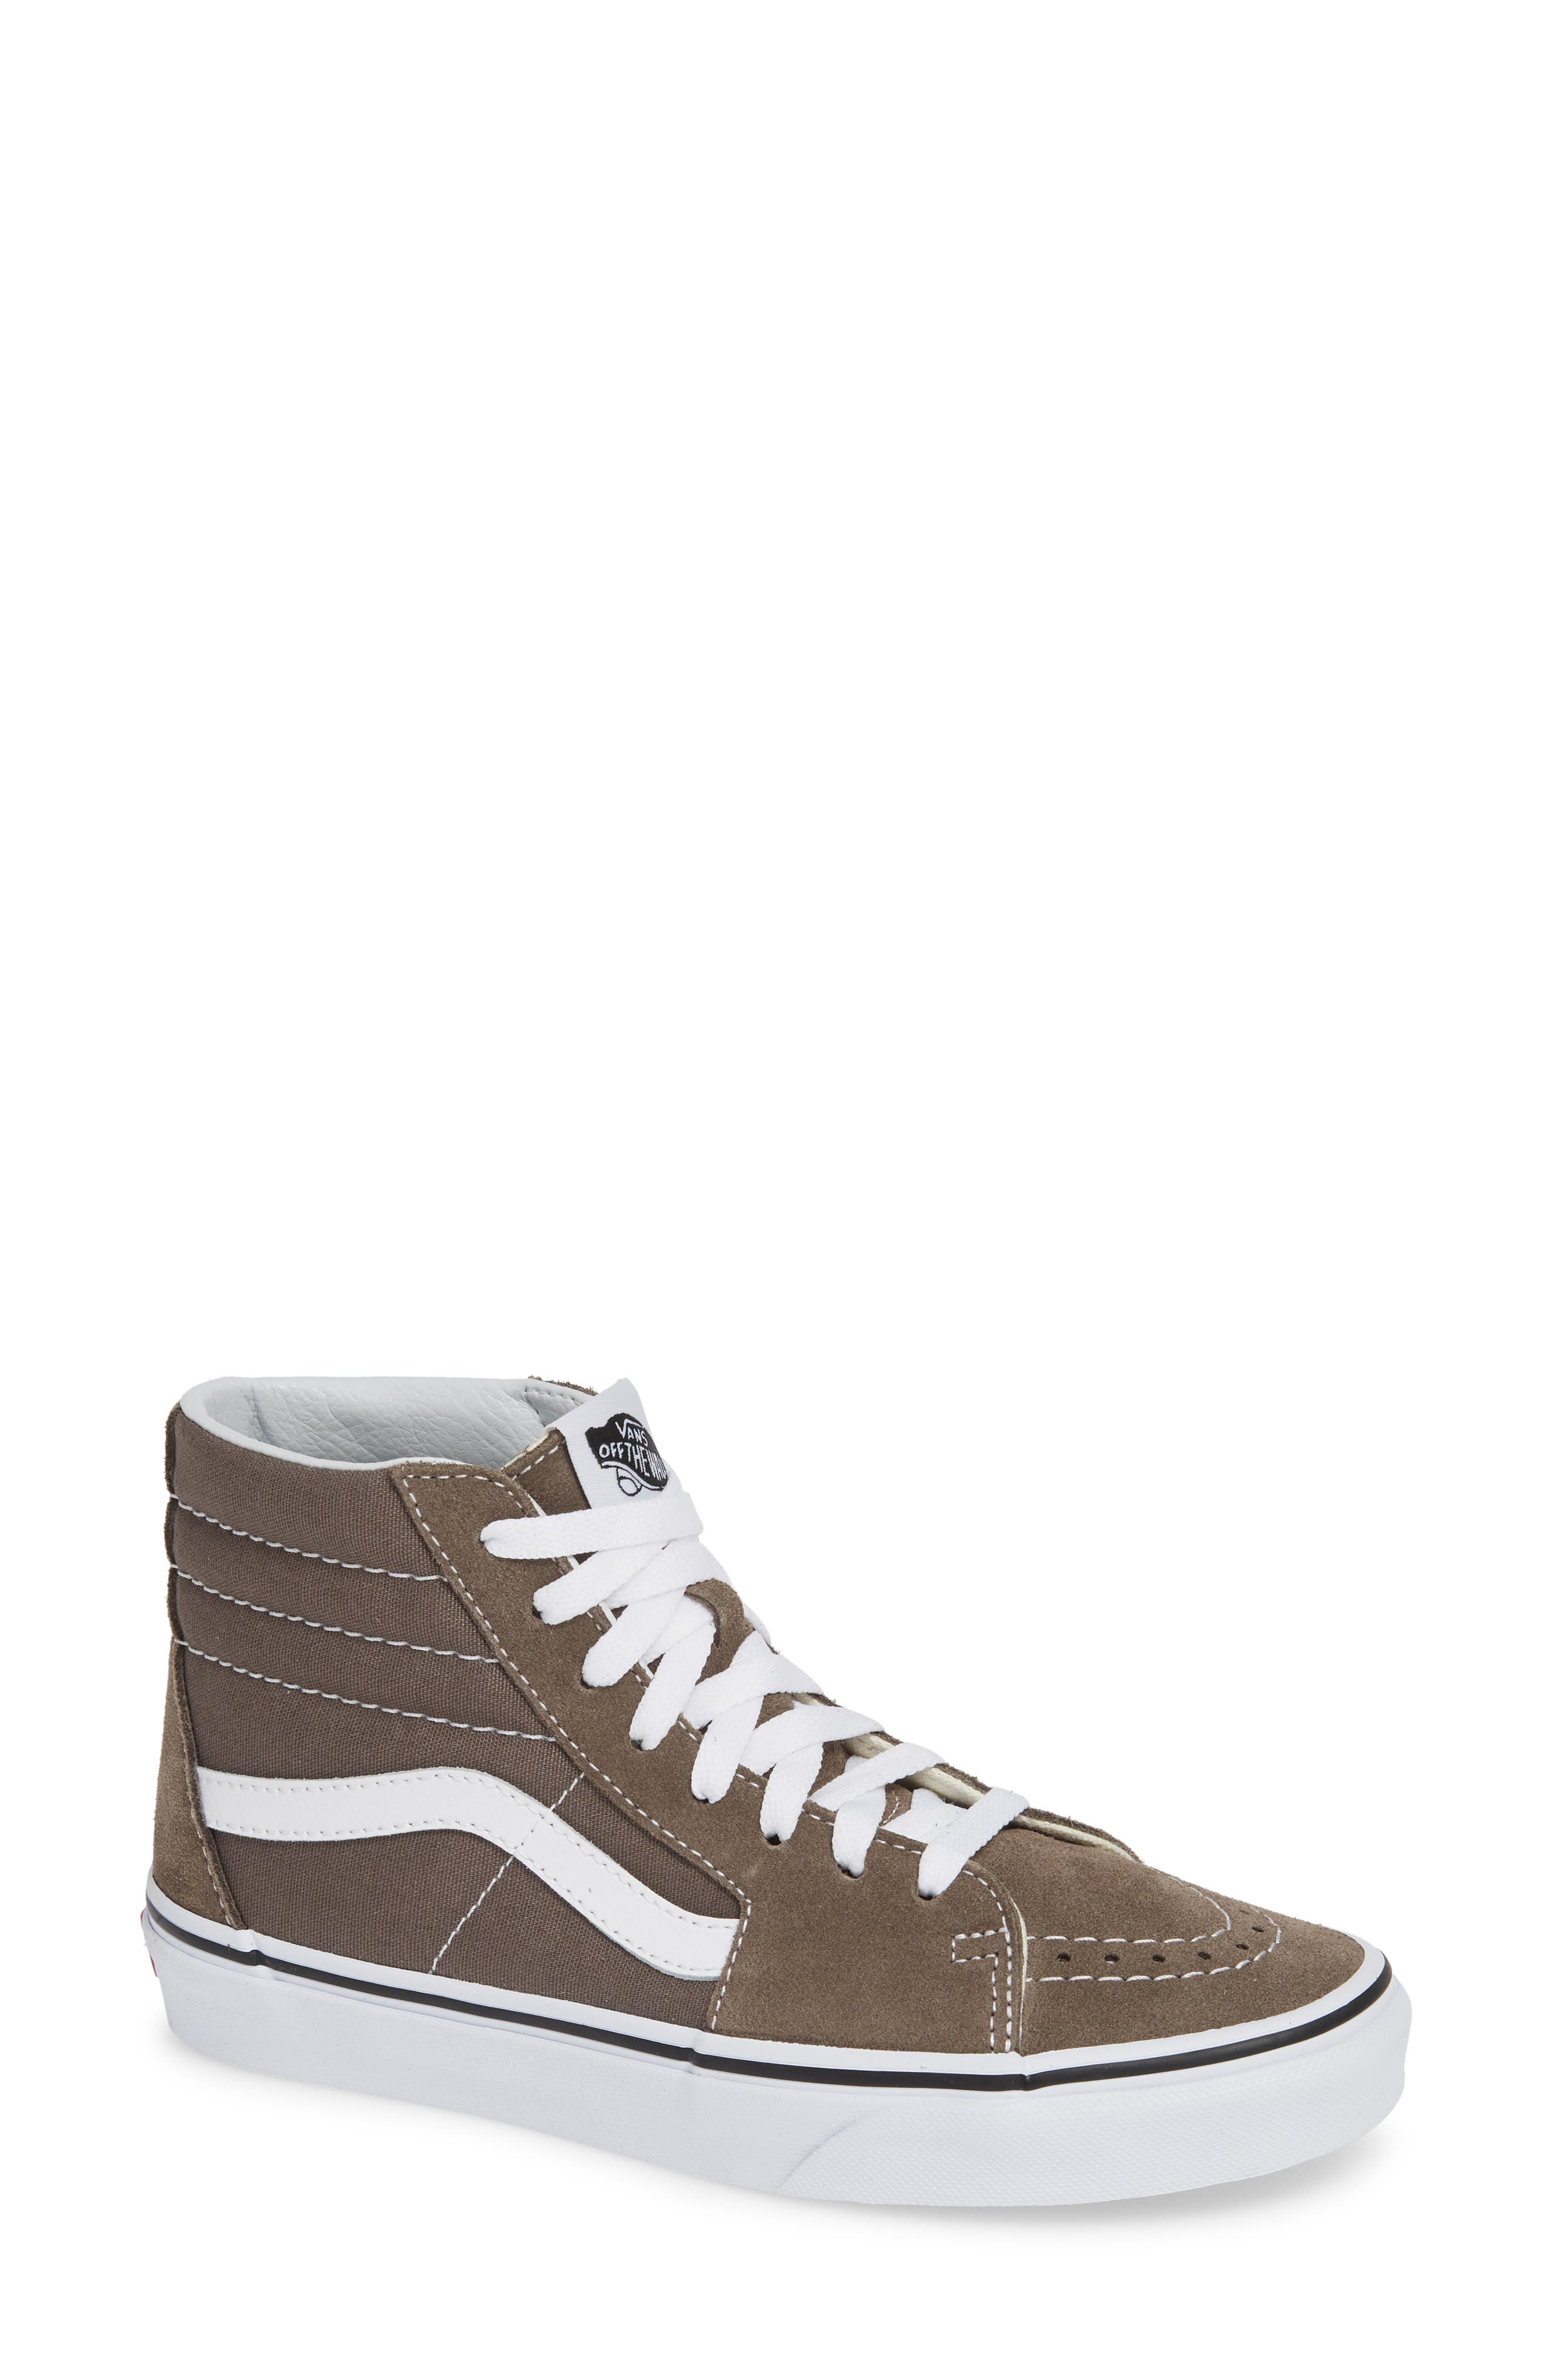 c7fa243633 High Tops  High-Top Sneakers for Women